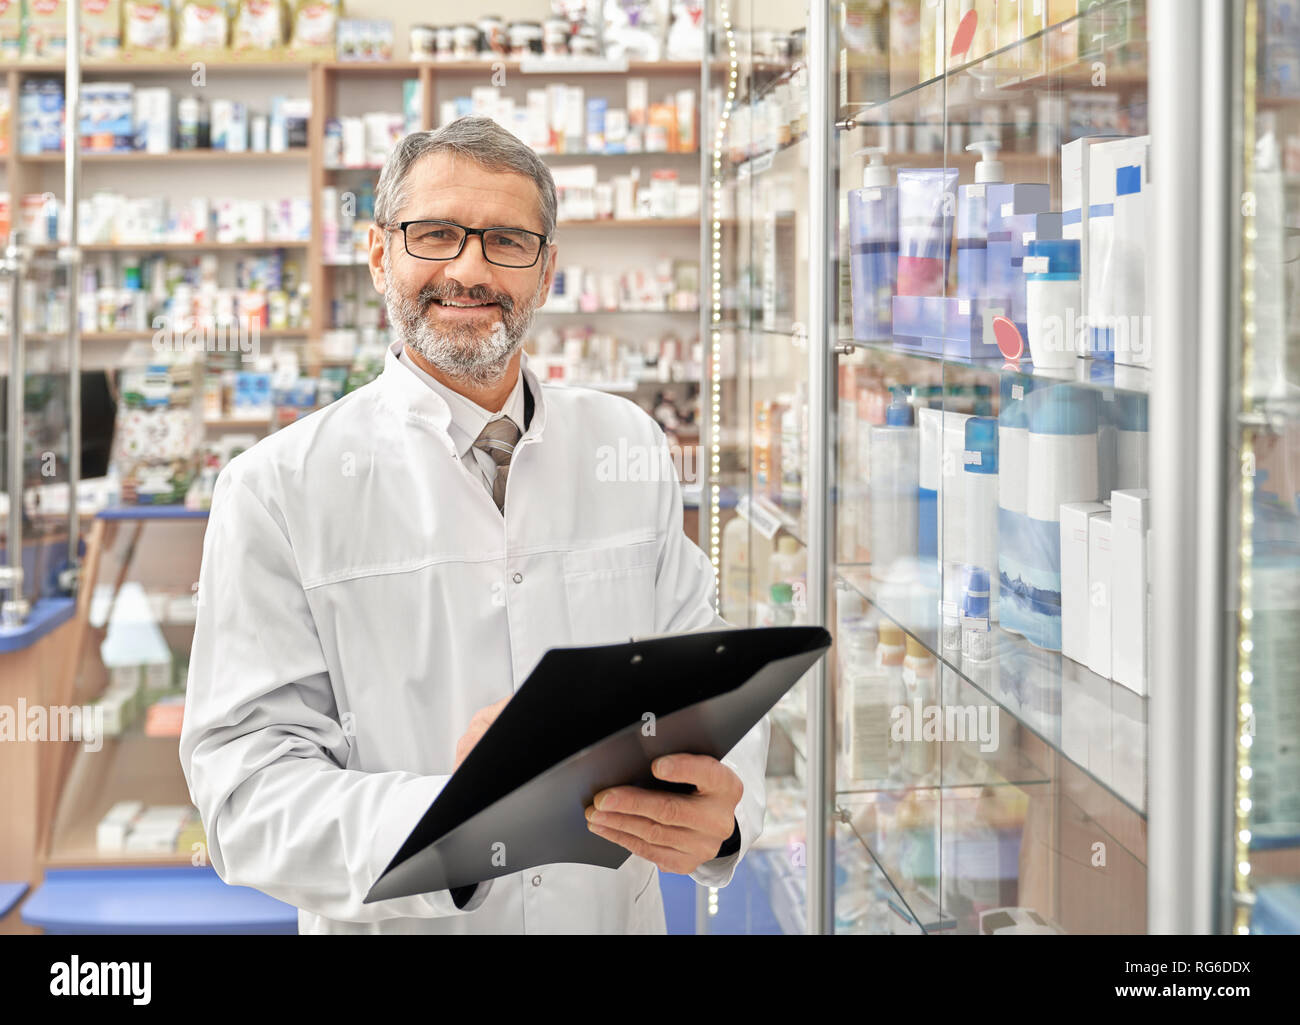 Cheerful mature man smiling, posing, standing near drugstore shelves with medicaments holding folder. Handsome bearded pharmacist with grey hair wearing in white lab coat and glasses. - Stock Image